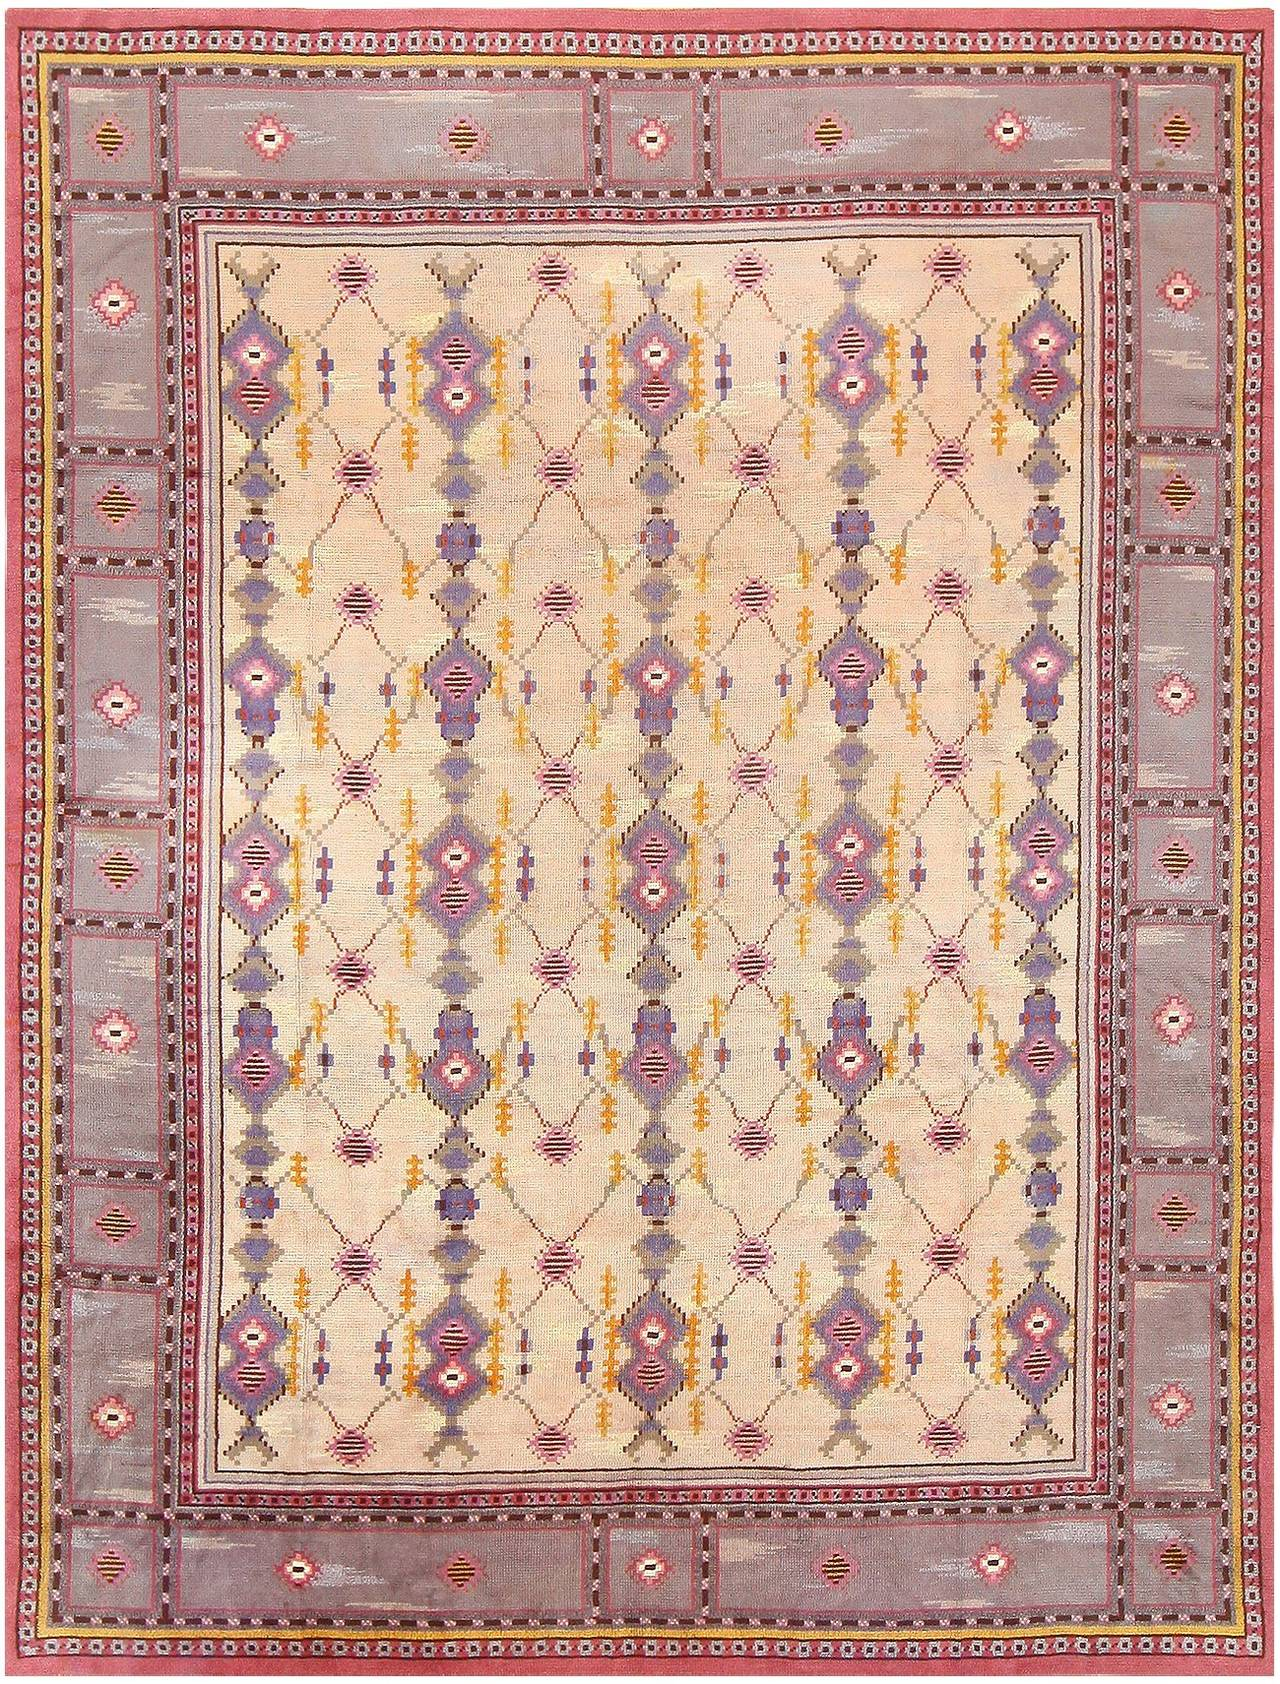 Vintage Scandinavian carpet, origin: Scandinavia, circa mid-20th century. Here is a delightful and exciting vintage carpet, a vintage Scandinavian carpet that was woven in Sweden during the middle years of the 20th century. A truly unique Swedish